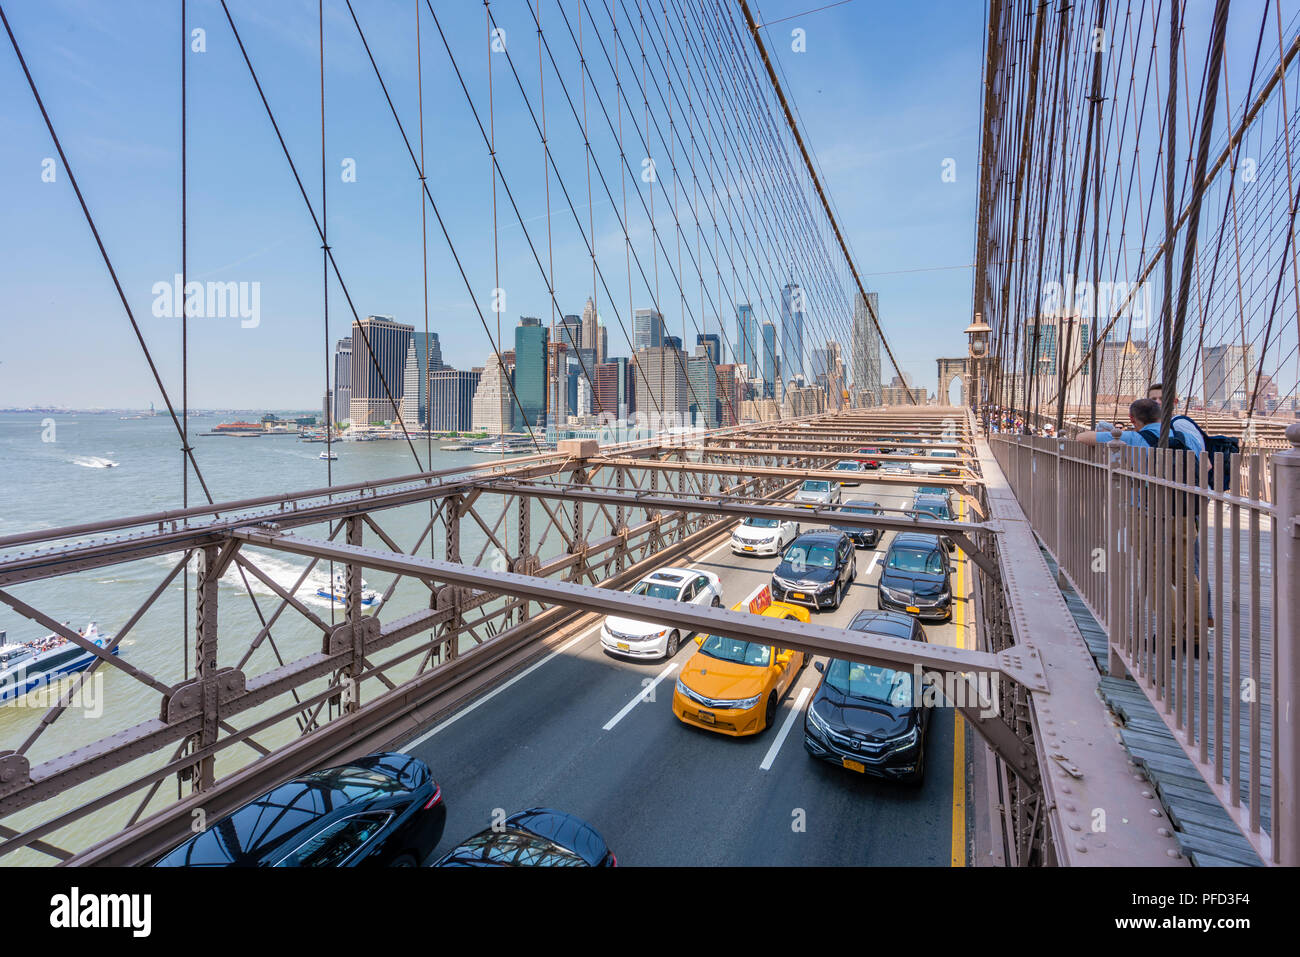 Der Verkehr auf der Brooklyn Bridge in New York City Stockbild